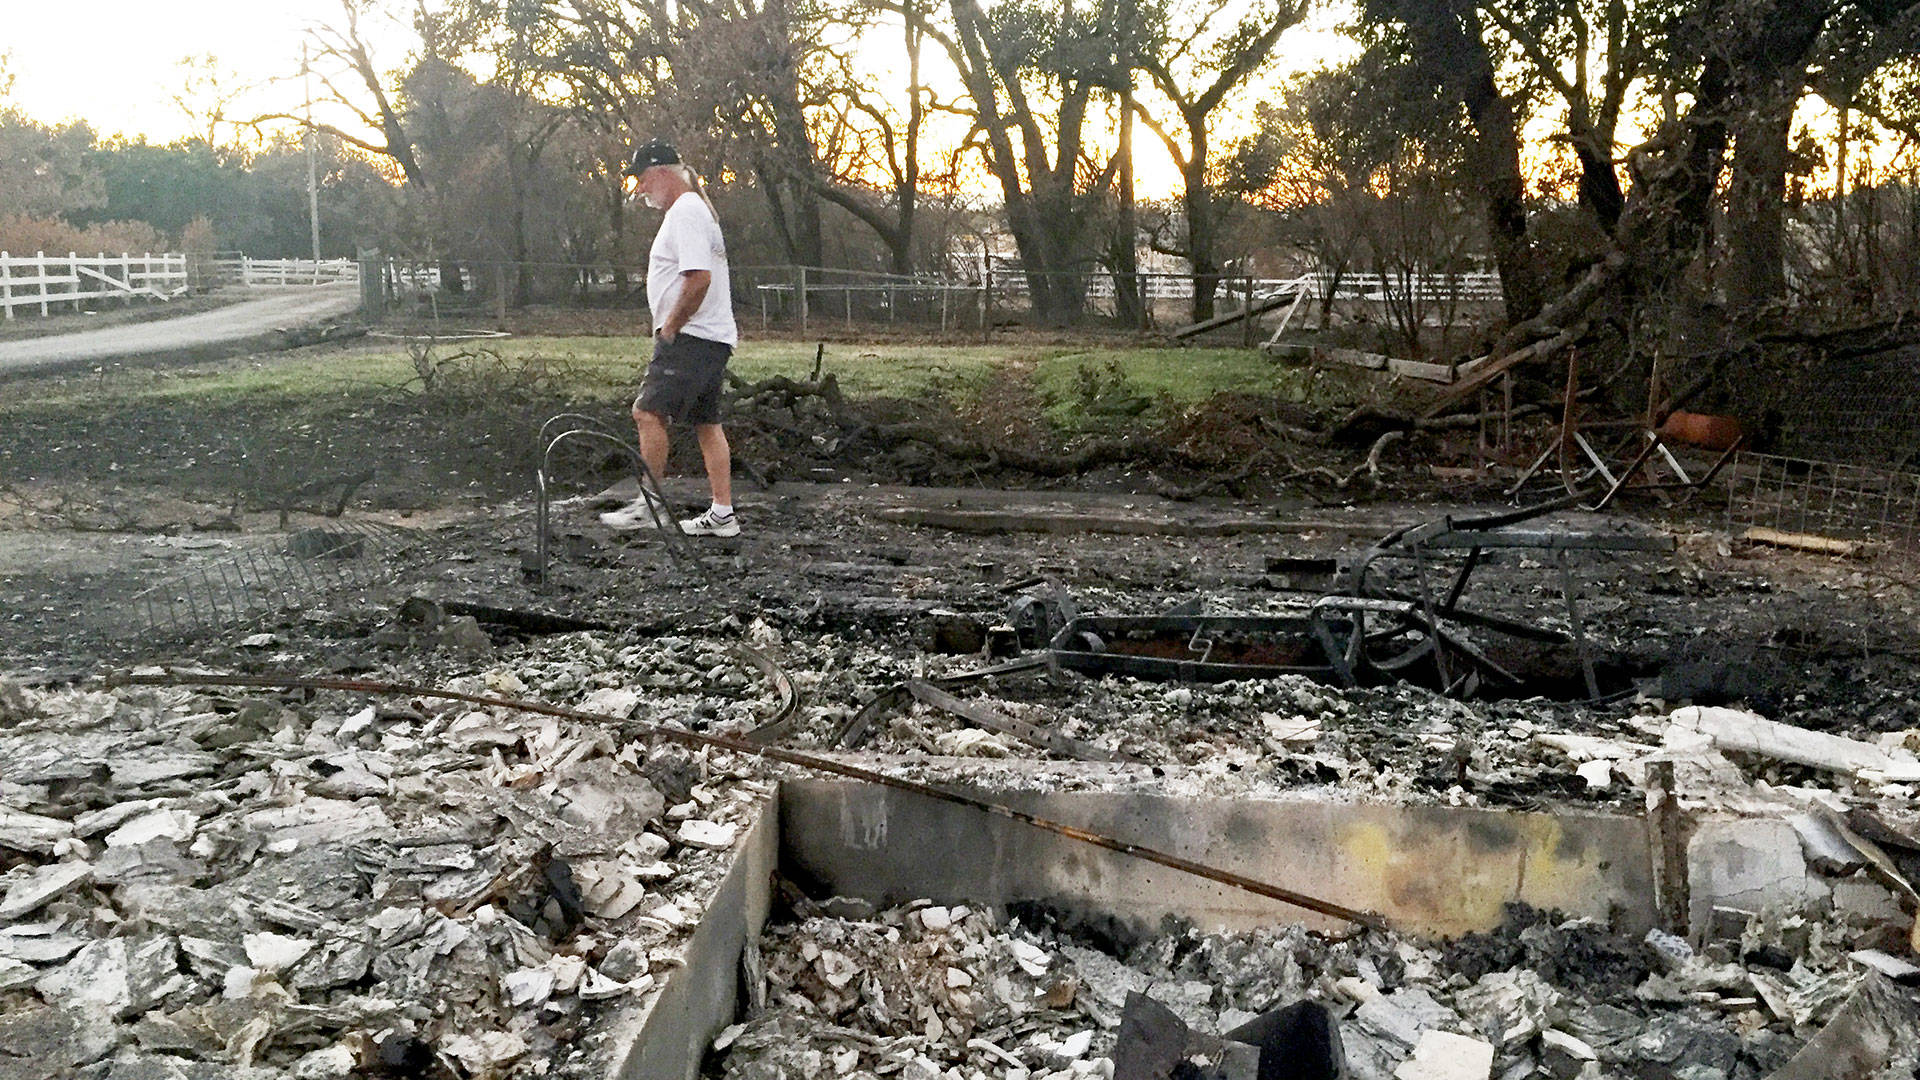 The author's dad walks among the ruins at his childhood home in Larkfield.